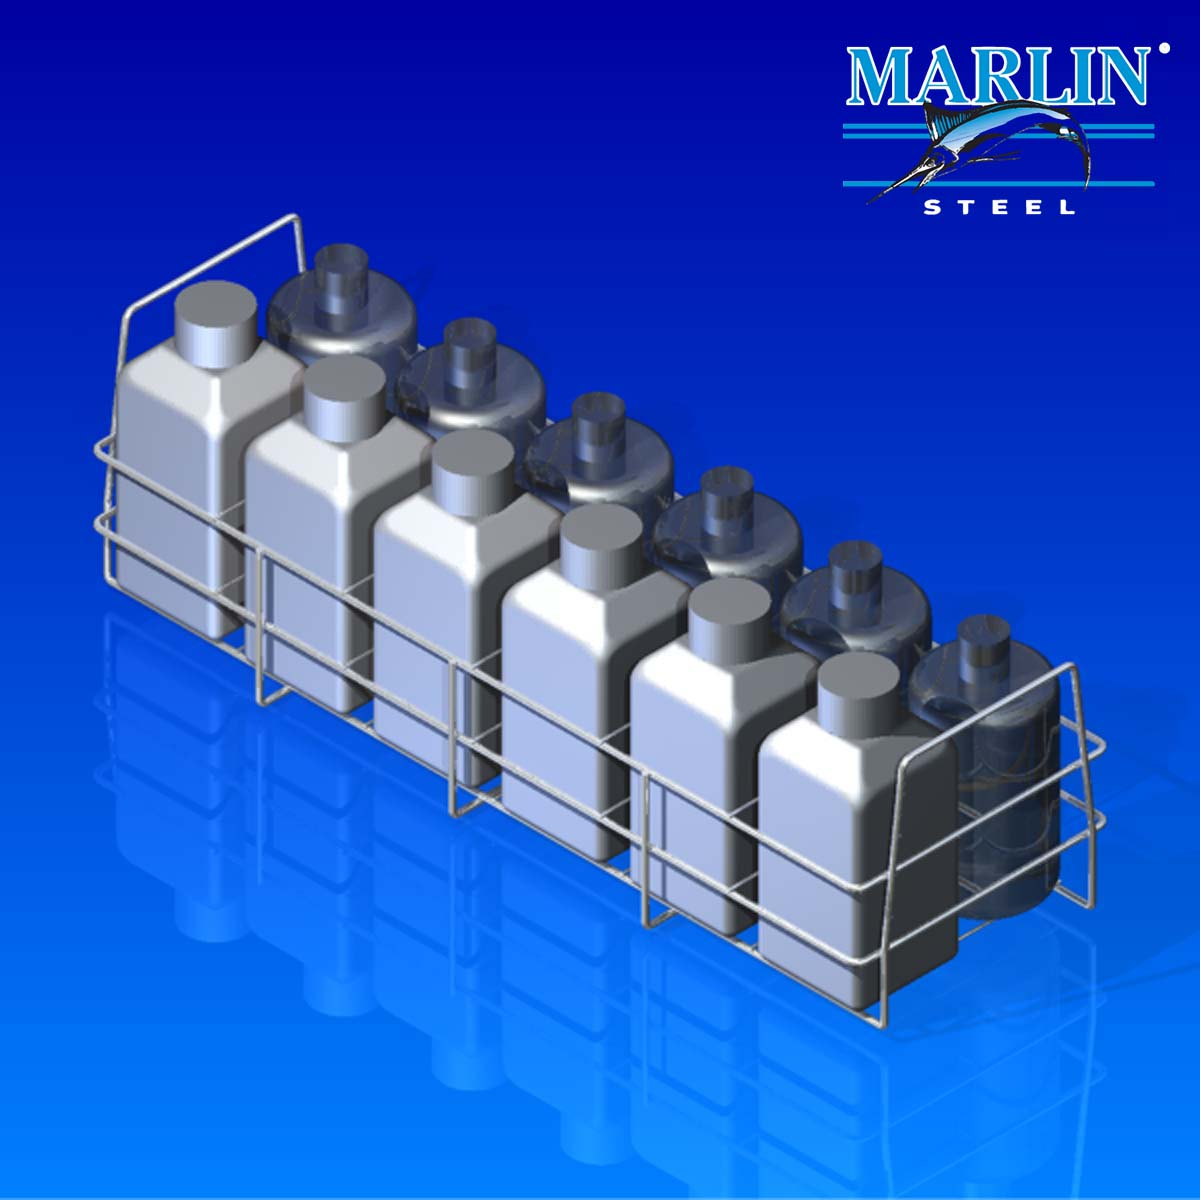 Marlin Steel Wire Basket 735001